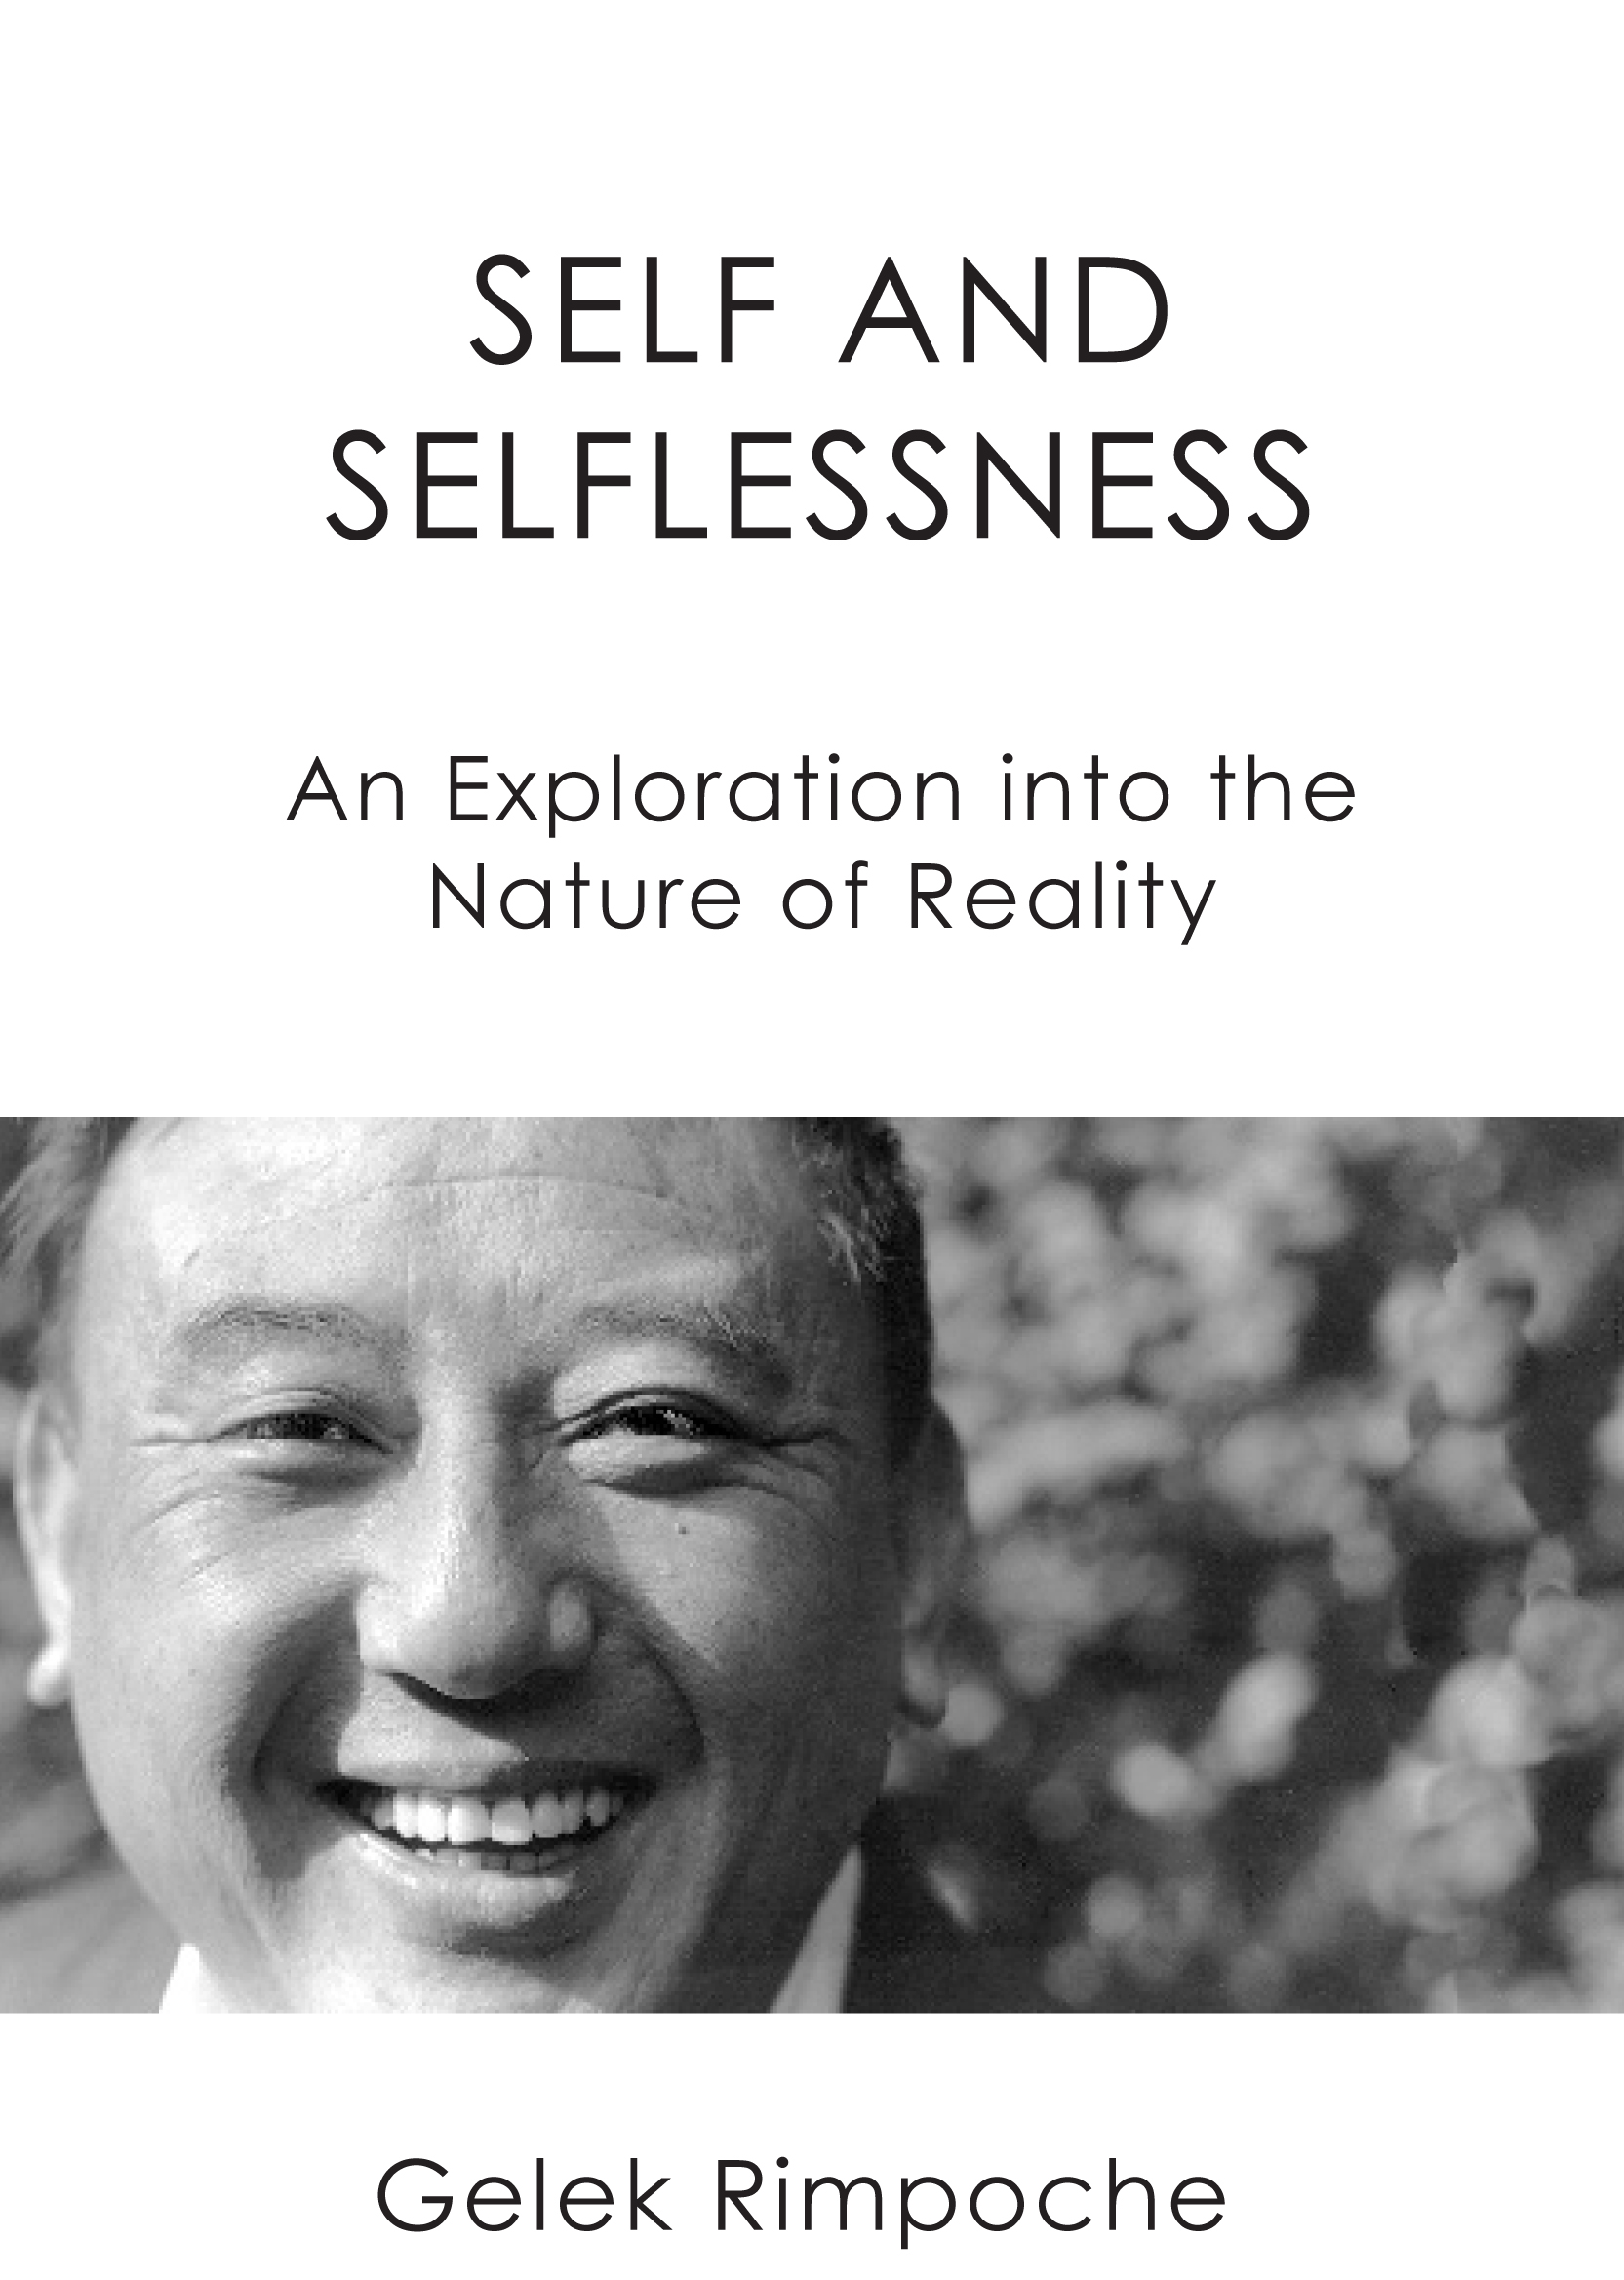 Self and Selflessness